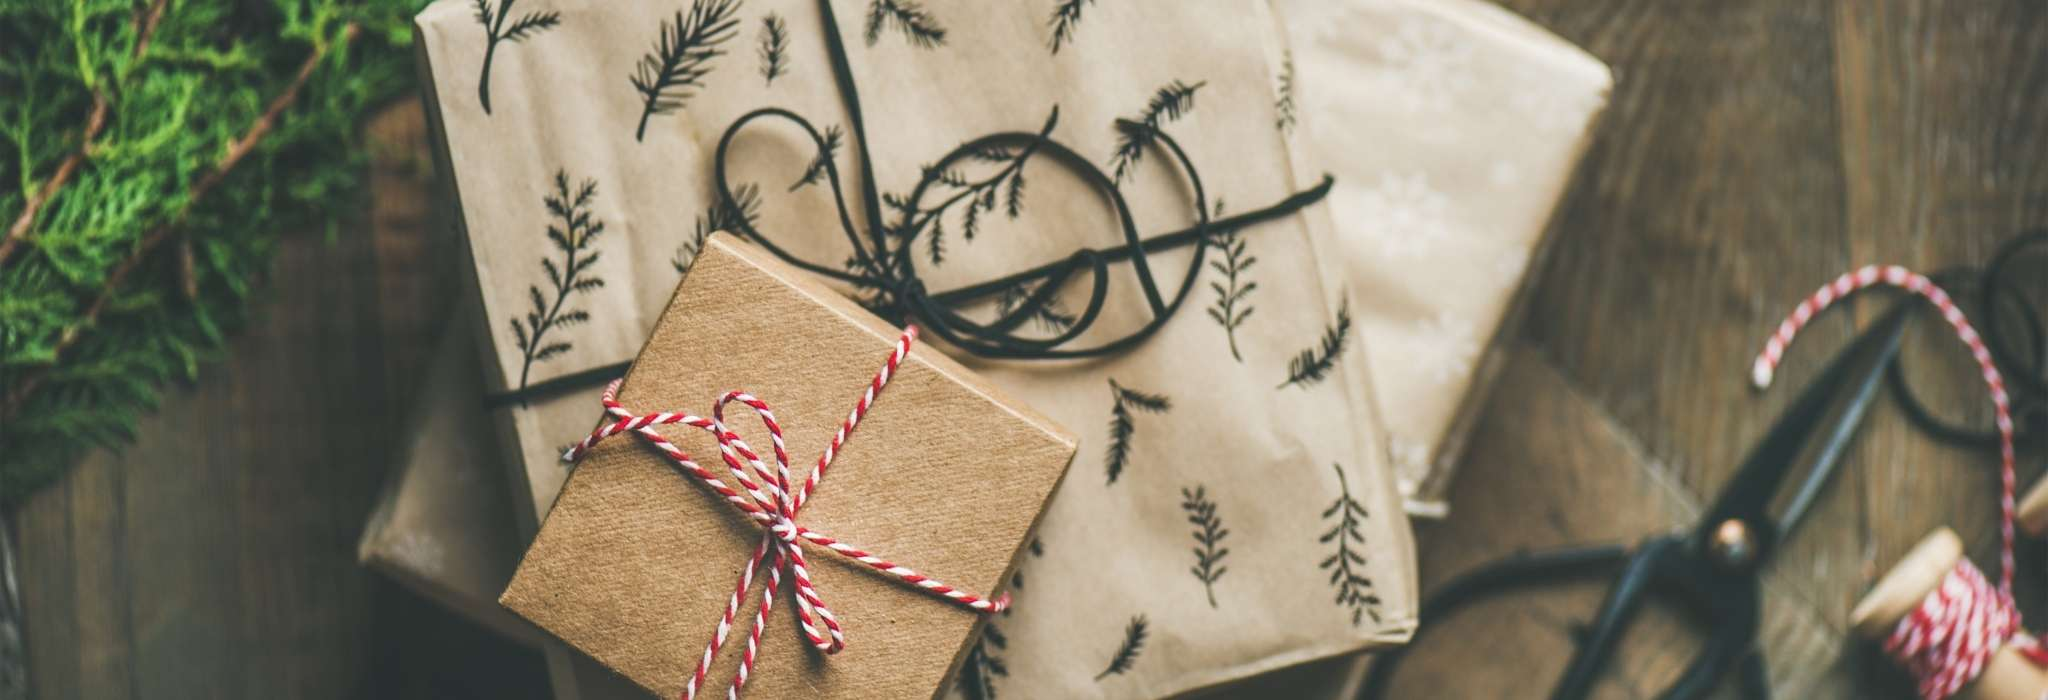 a pile of presents wrapped in brown paper and tied with red and white string are piled together on a wooden surface.